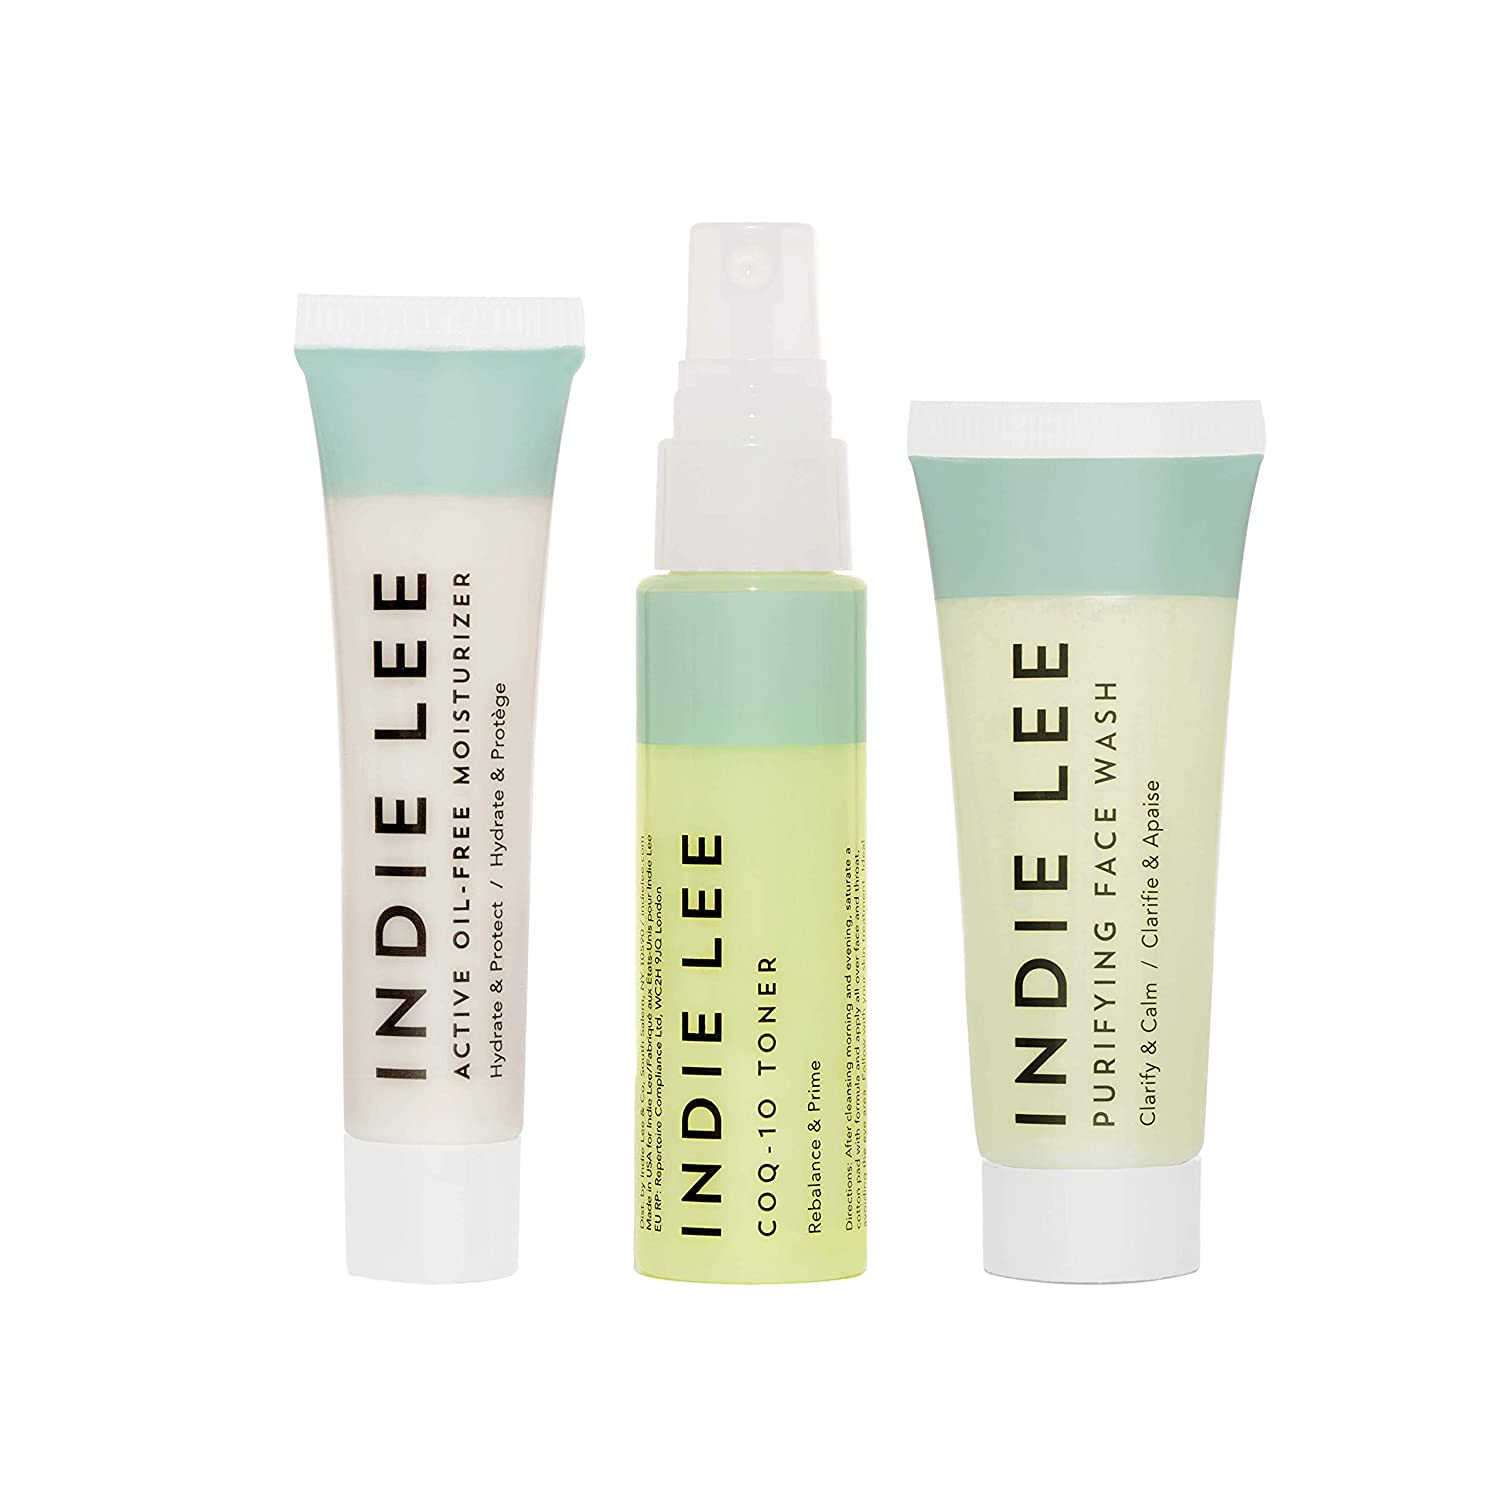 Purifying Face Wash by Indie Lee #21